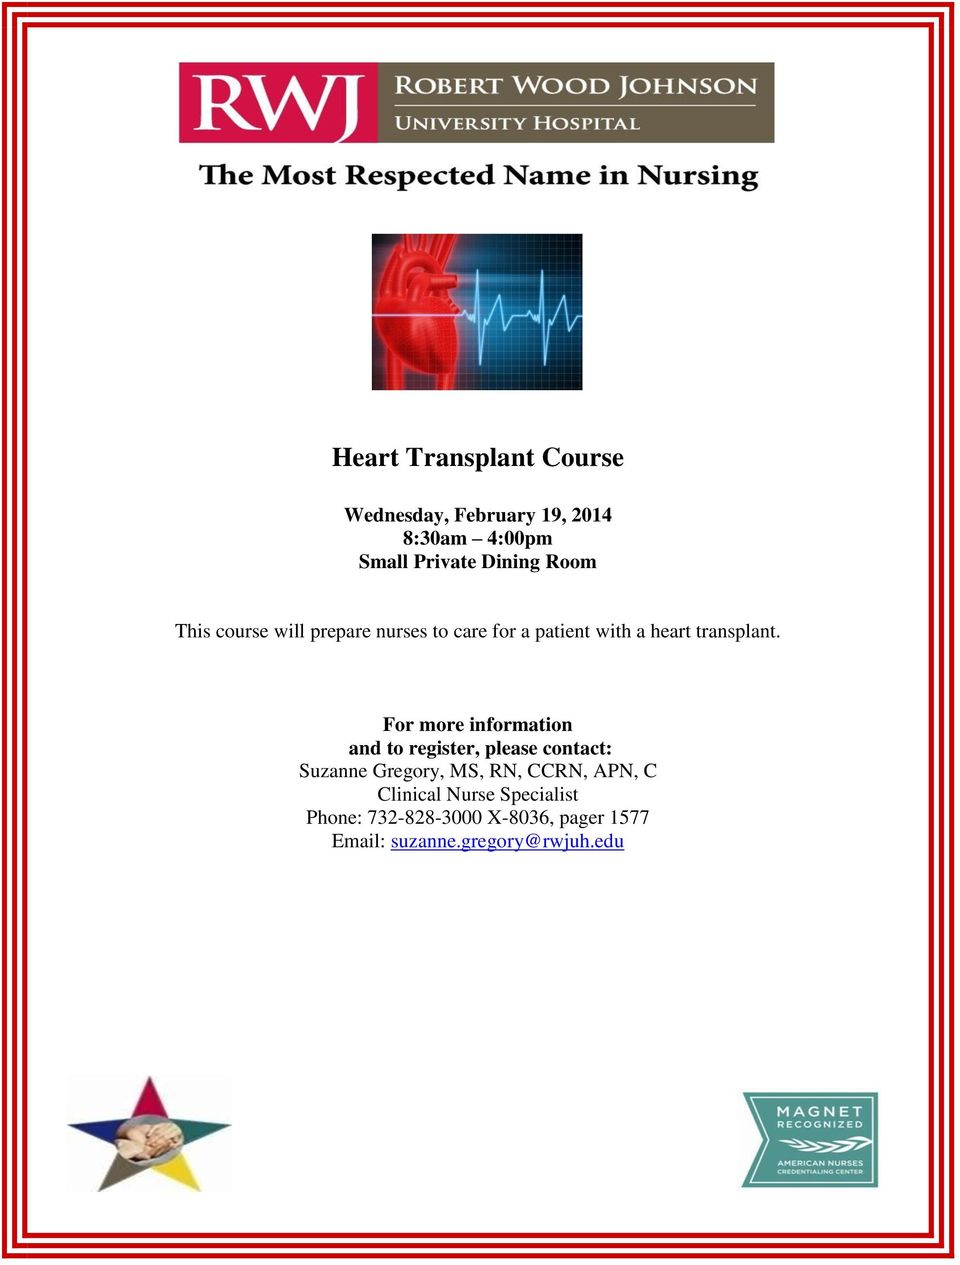 For more information and to register, please contact: Suzanne Gregory, MS, RN, CCRN, APN,